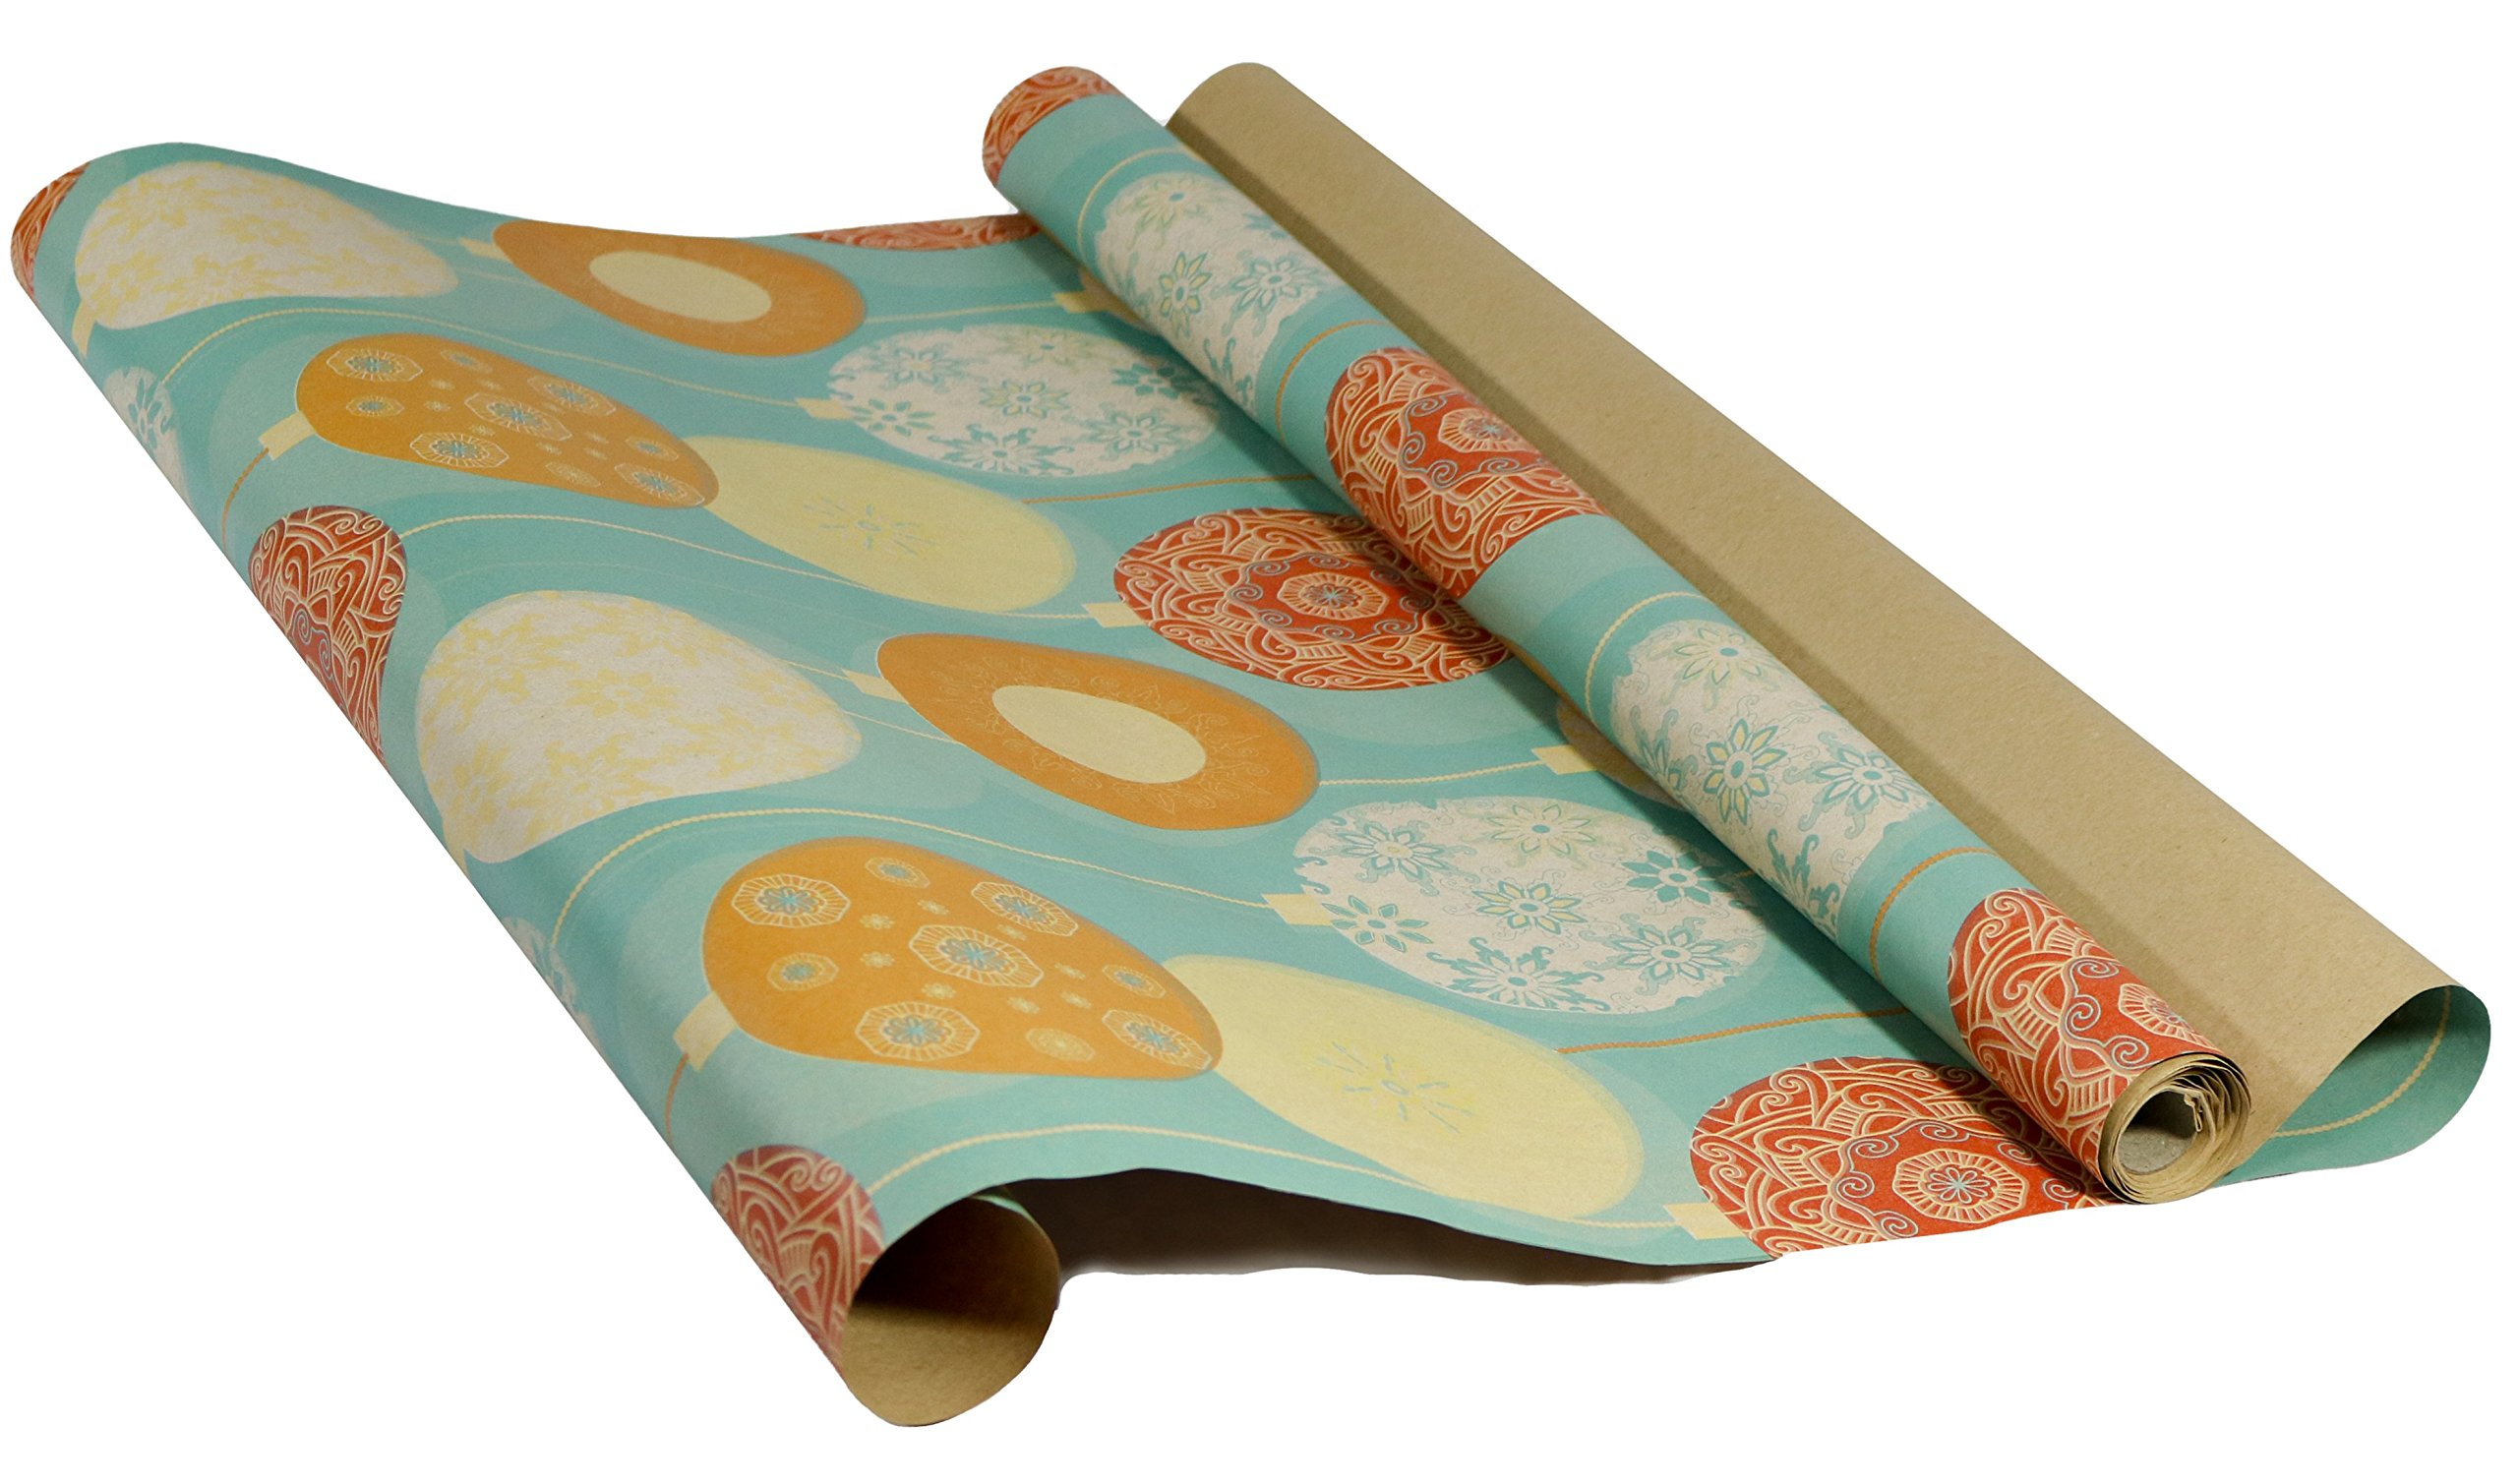 Printed Christmas Kraft Wrapping Paper Set (Reindeer-Bulbs-Trees on Brown Kraft)